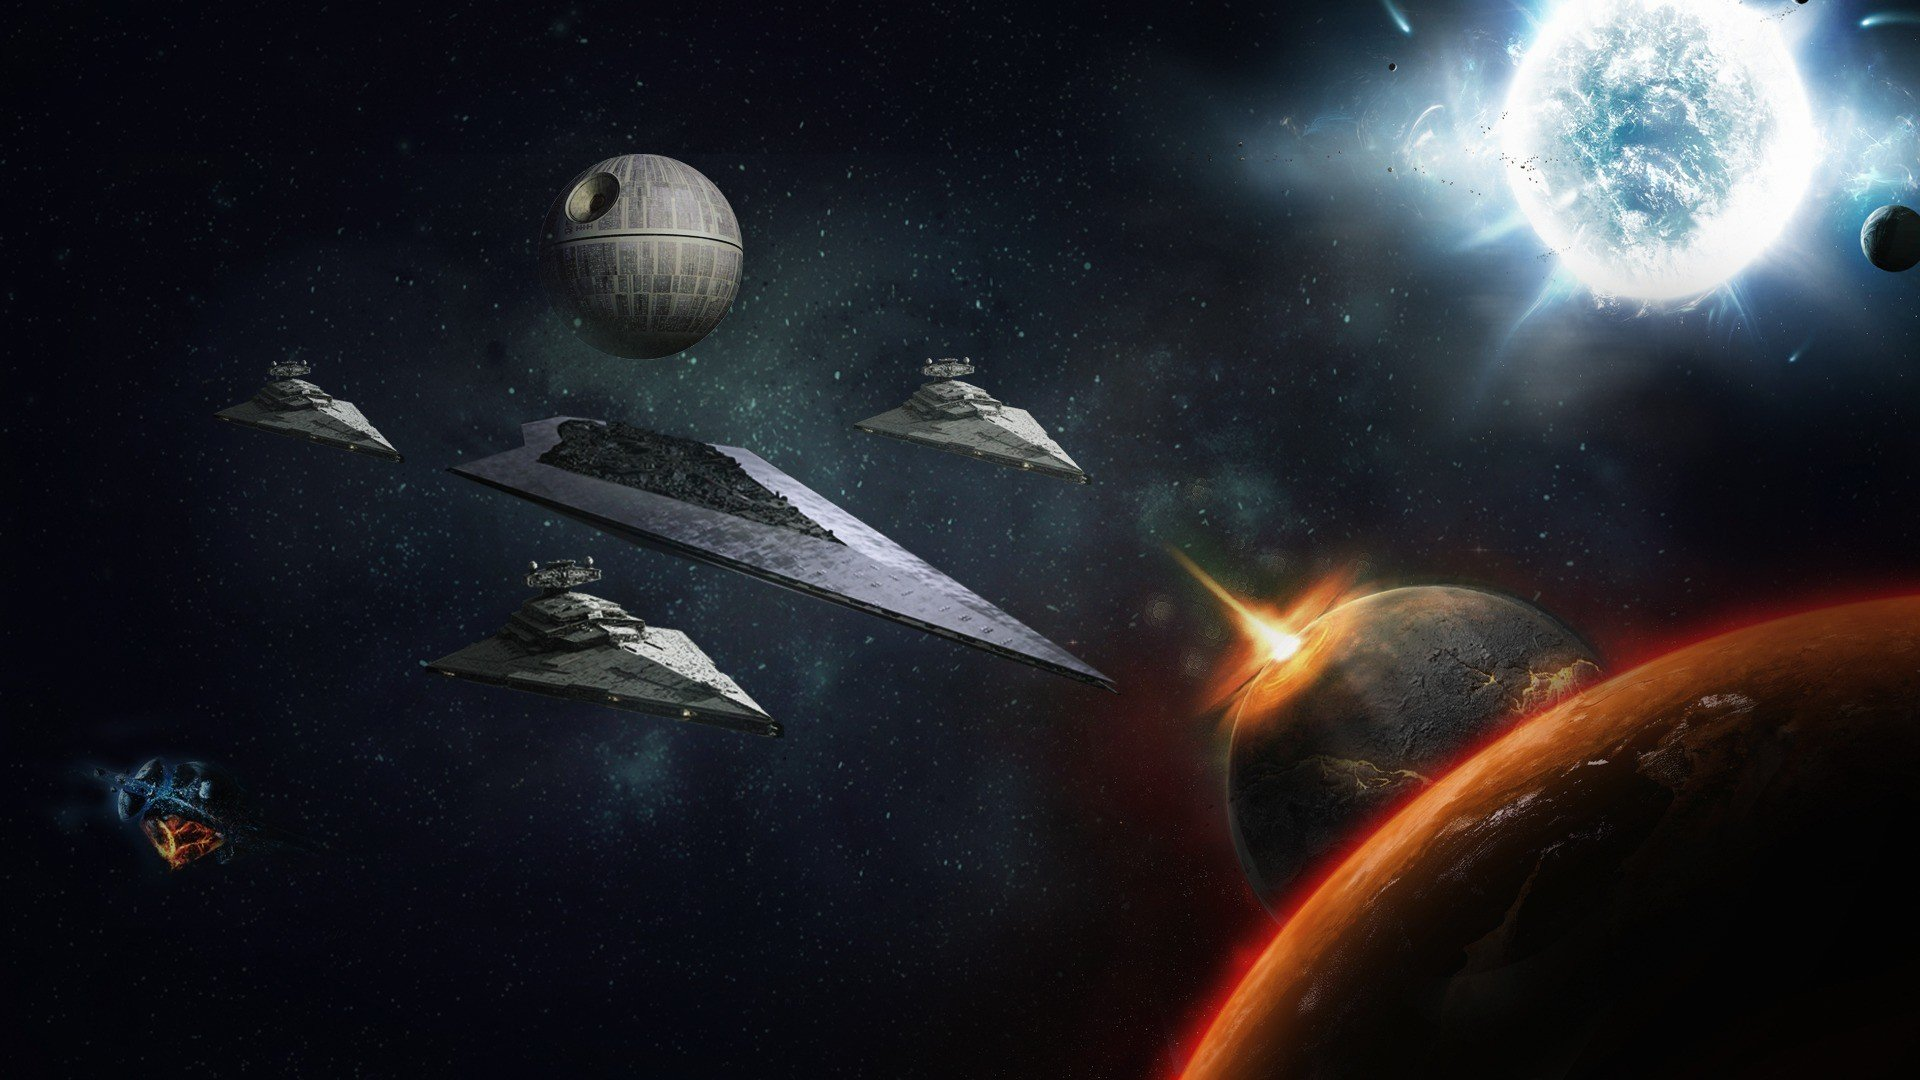 Star   Star Wars Planets Background 9431   HD Wallpaper Download 1920x1080